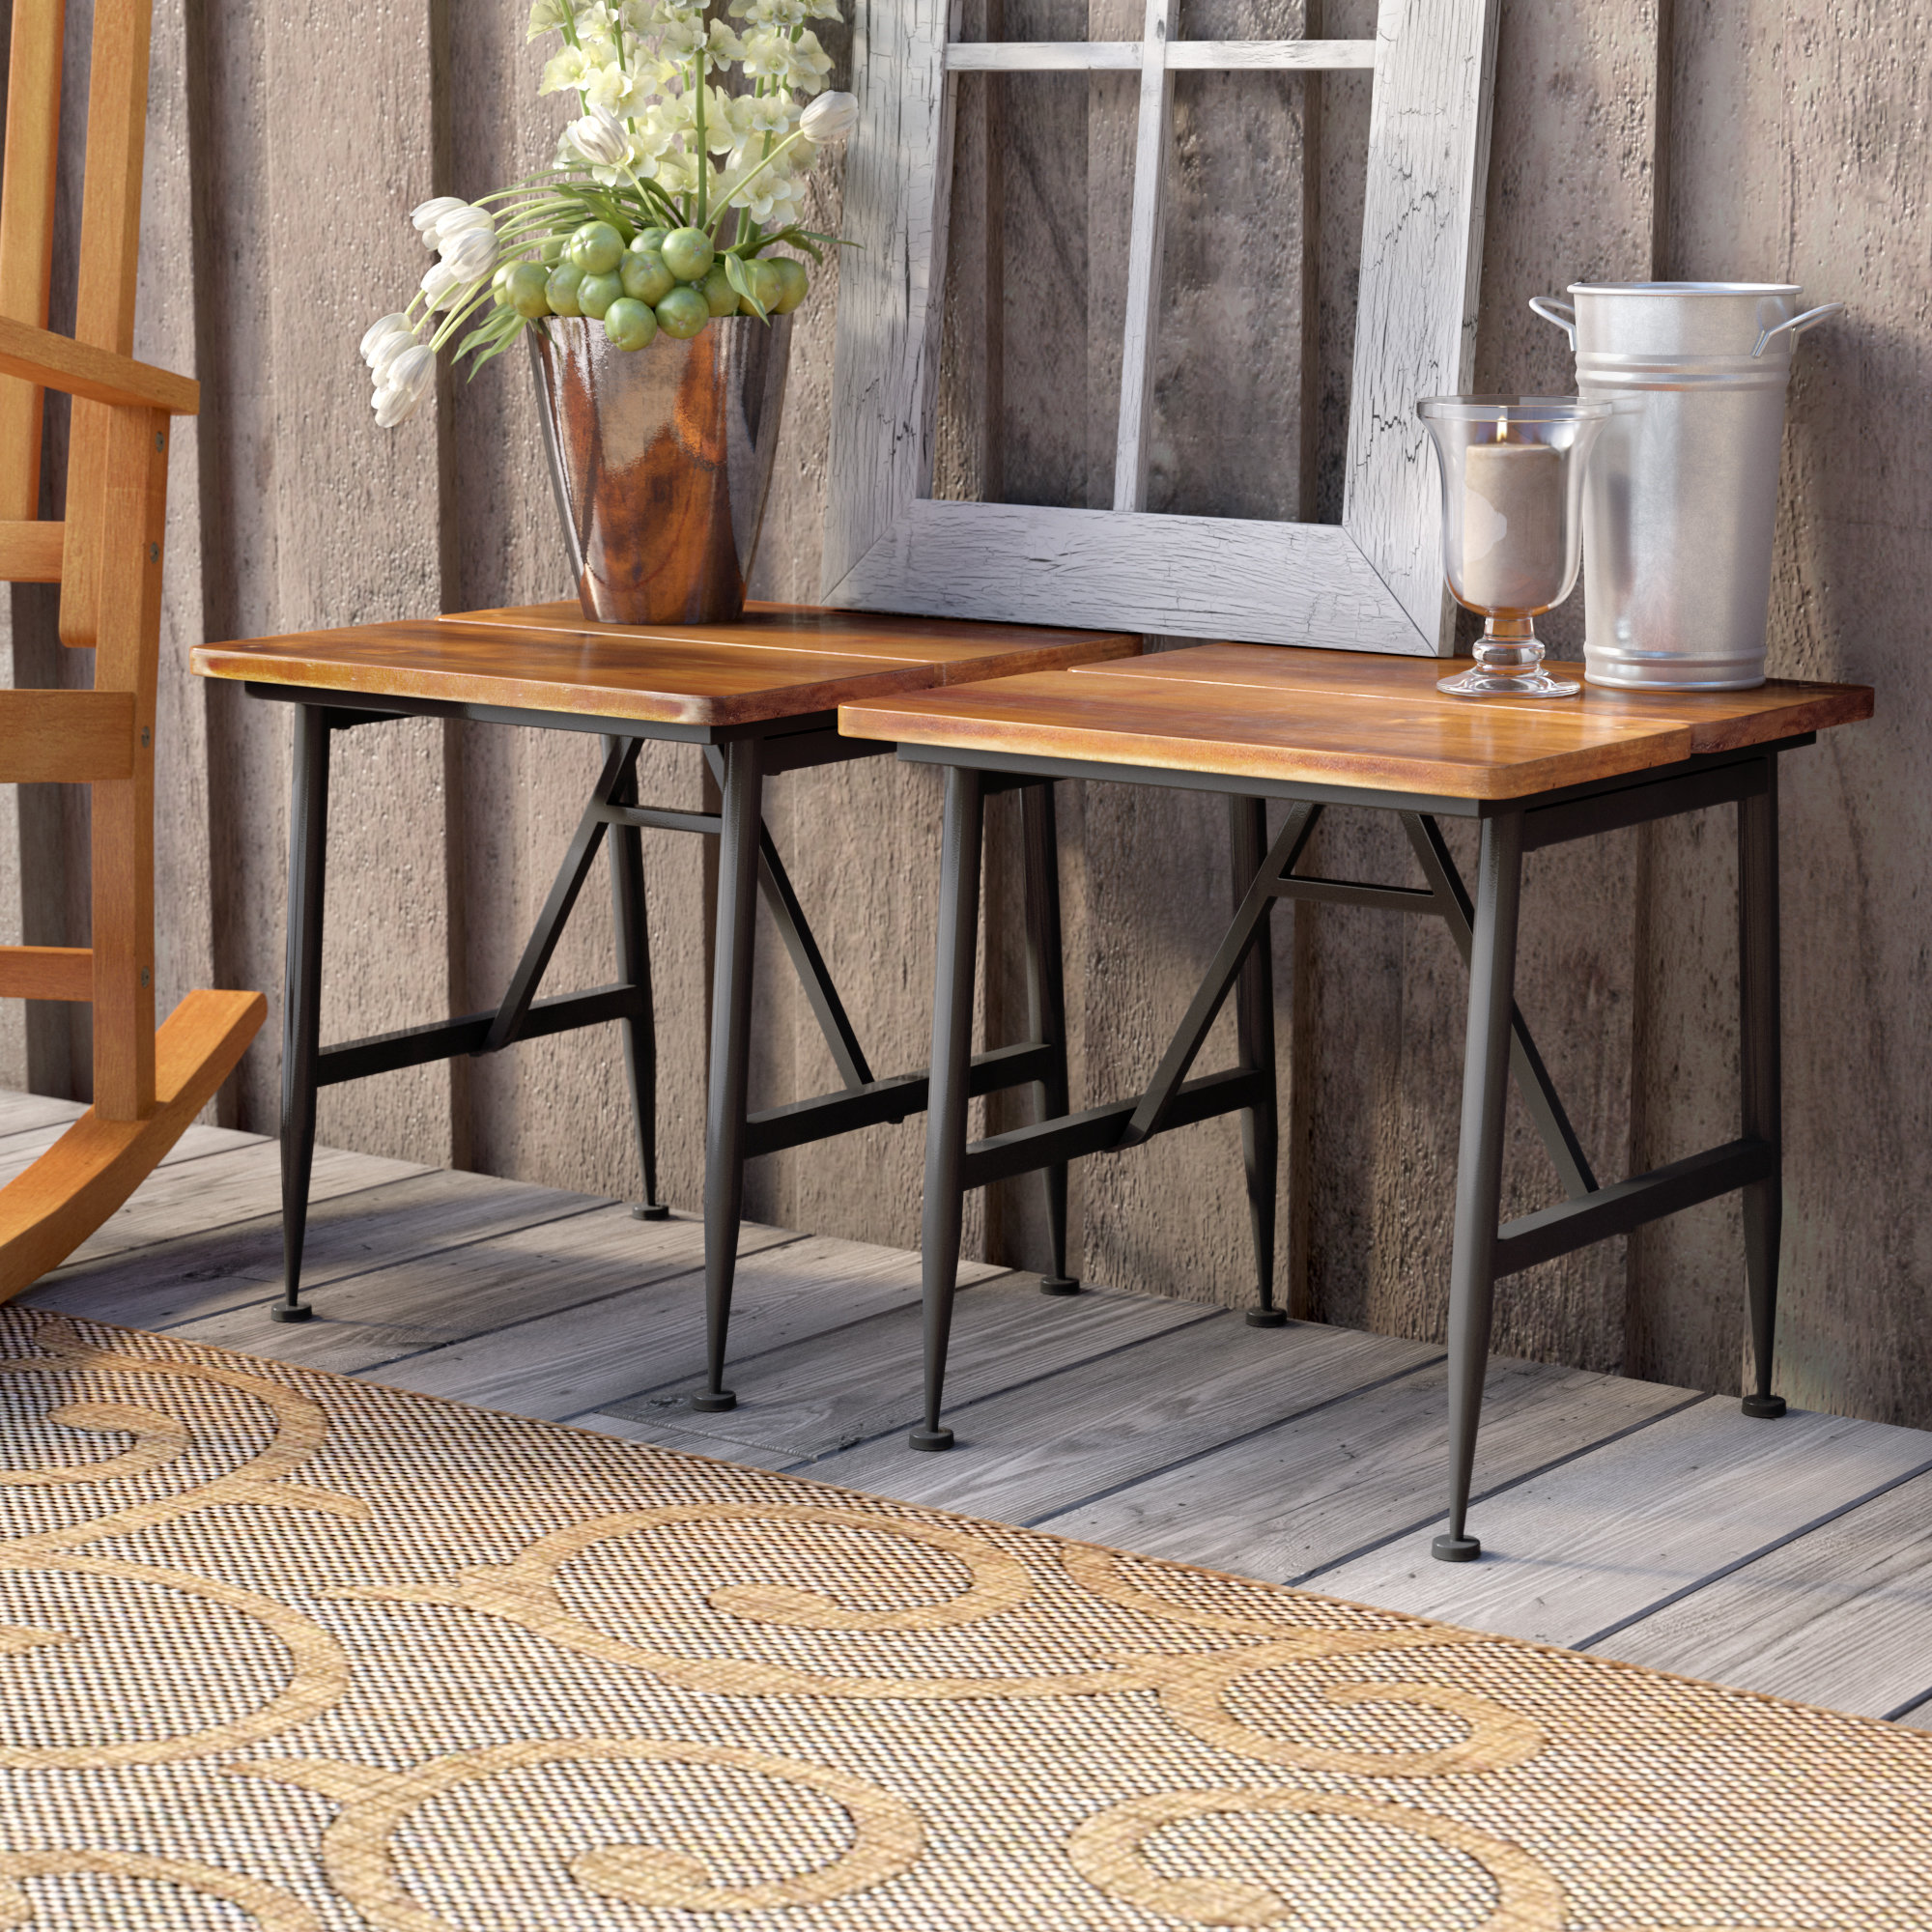 gracie oaks frankston outdoor wood accent table set reviews nautical themed bedroom target metal patio tiffany style lighting pier one clearance address plaques oak console ott